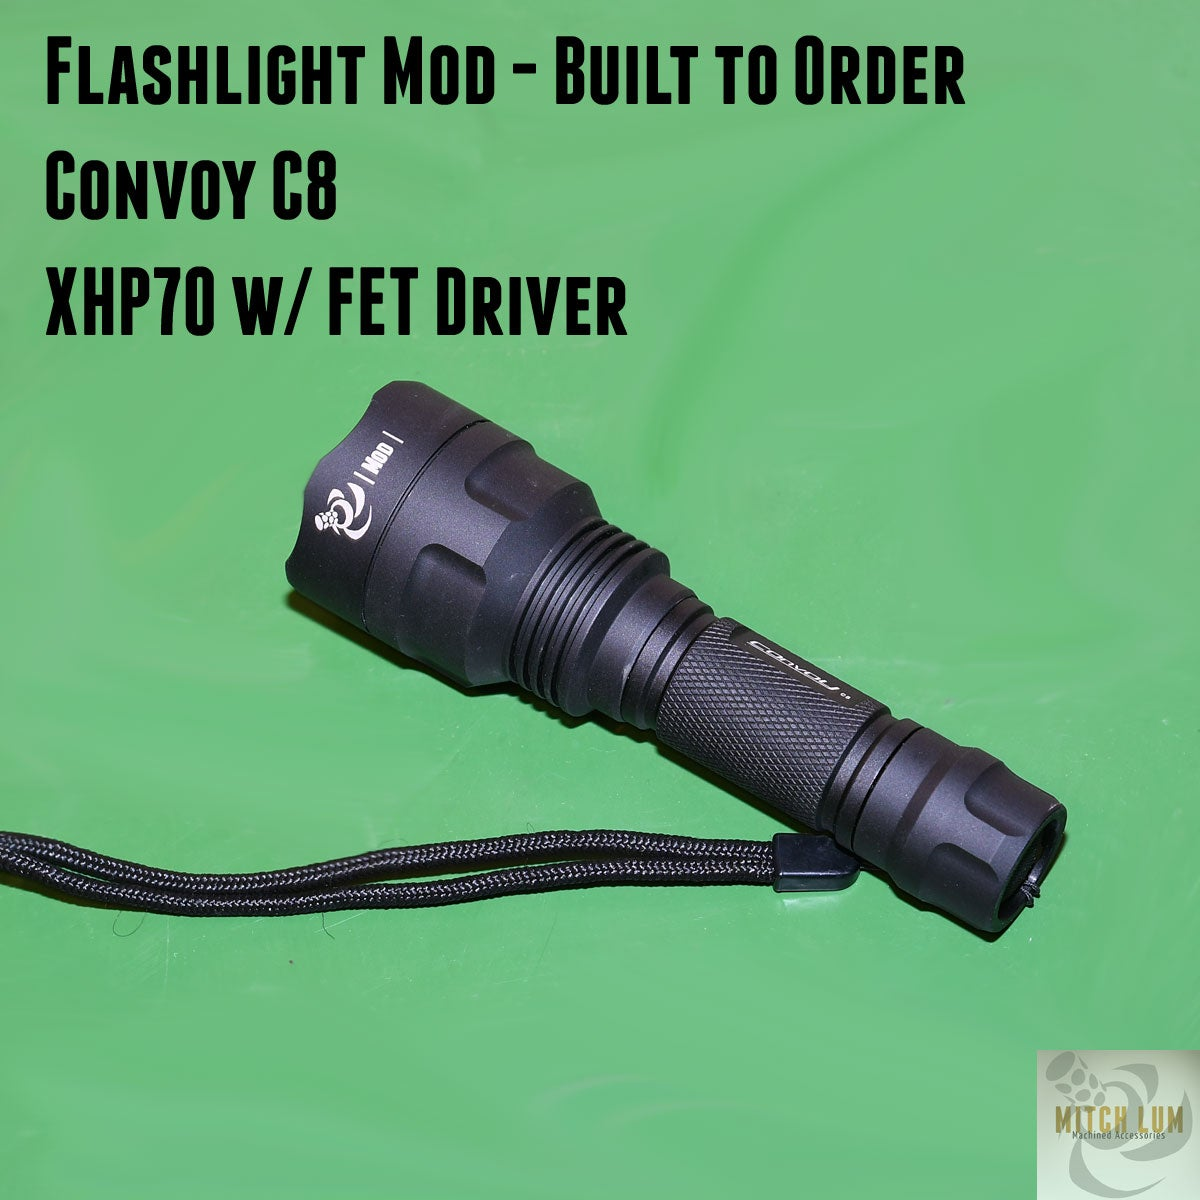 Flashlight Mod - Convoy C8